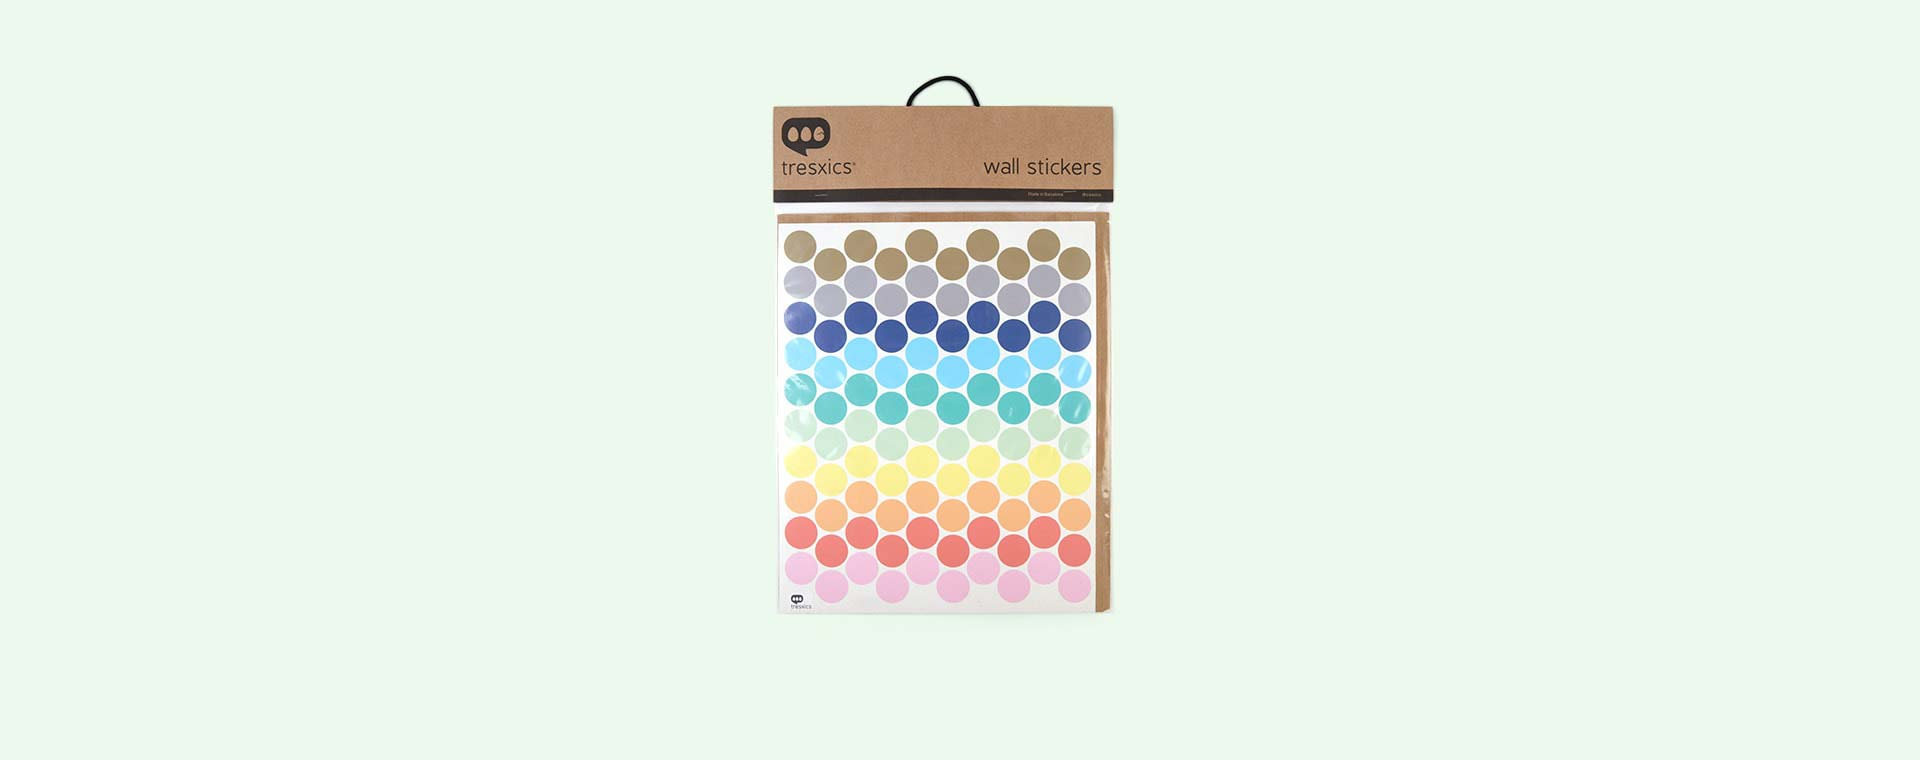 Multi Tresxics Bright Dots Wall Stickers